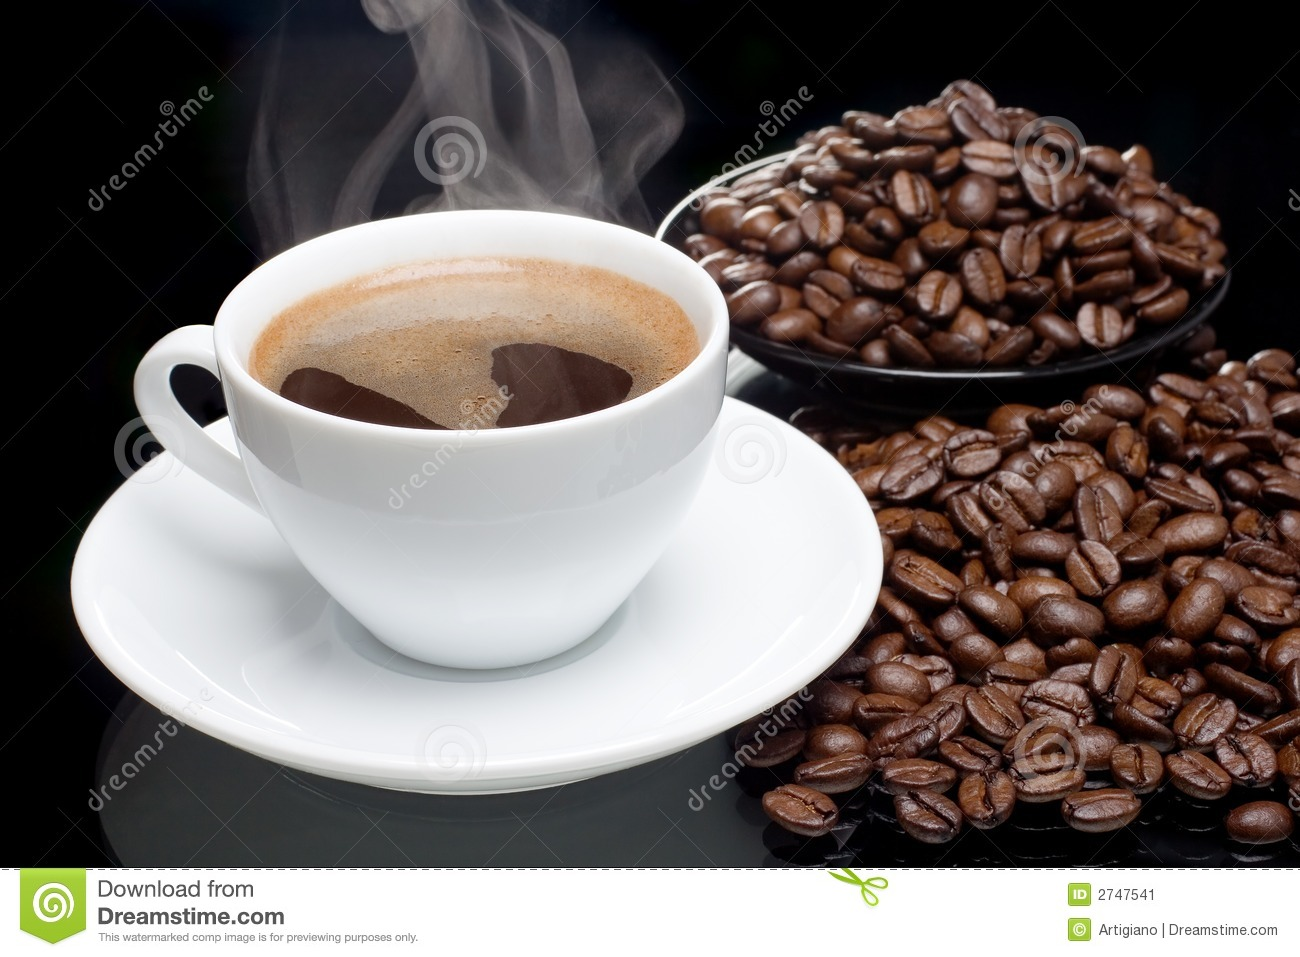 Coffee with coffee-beans